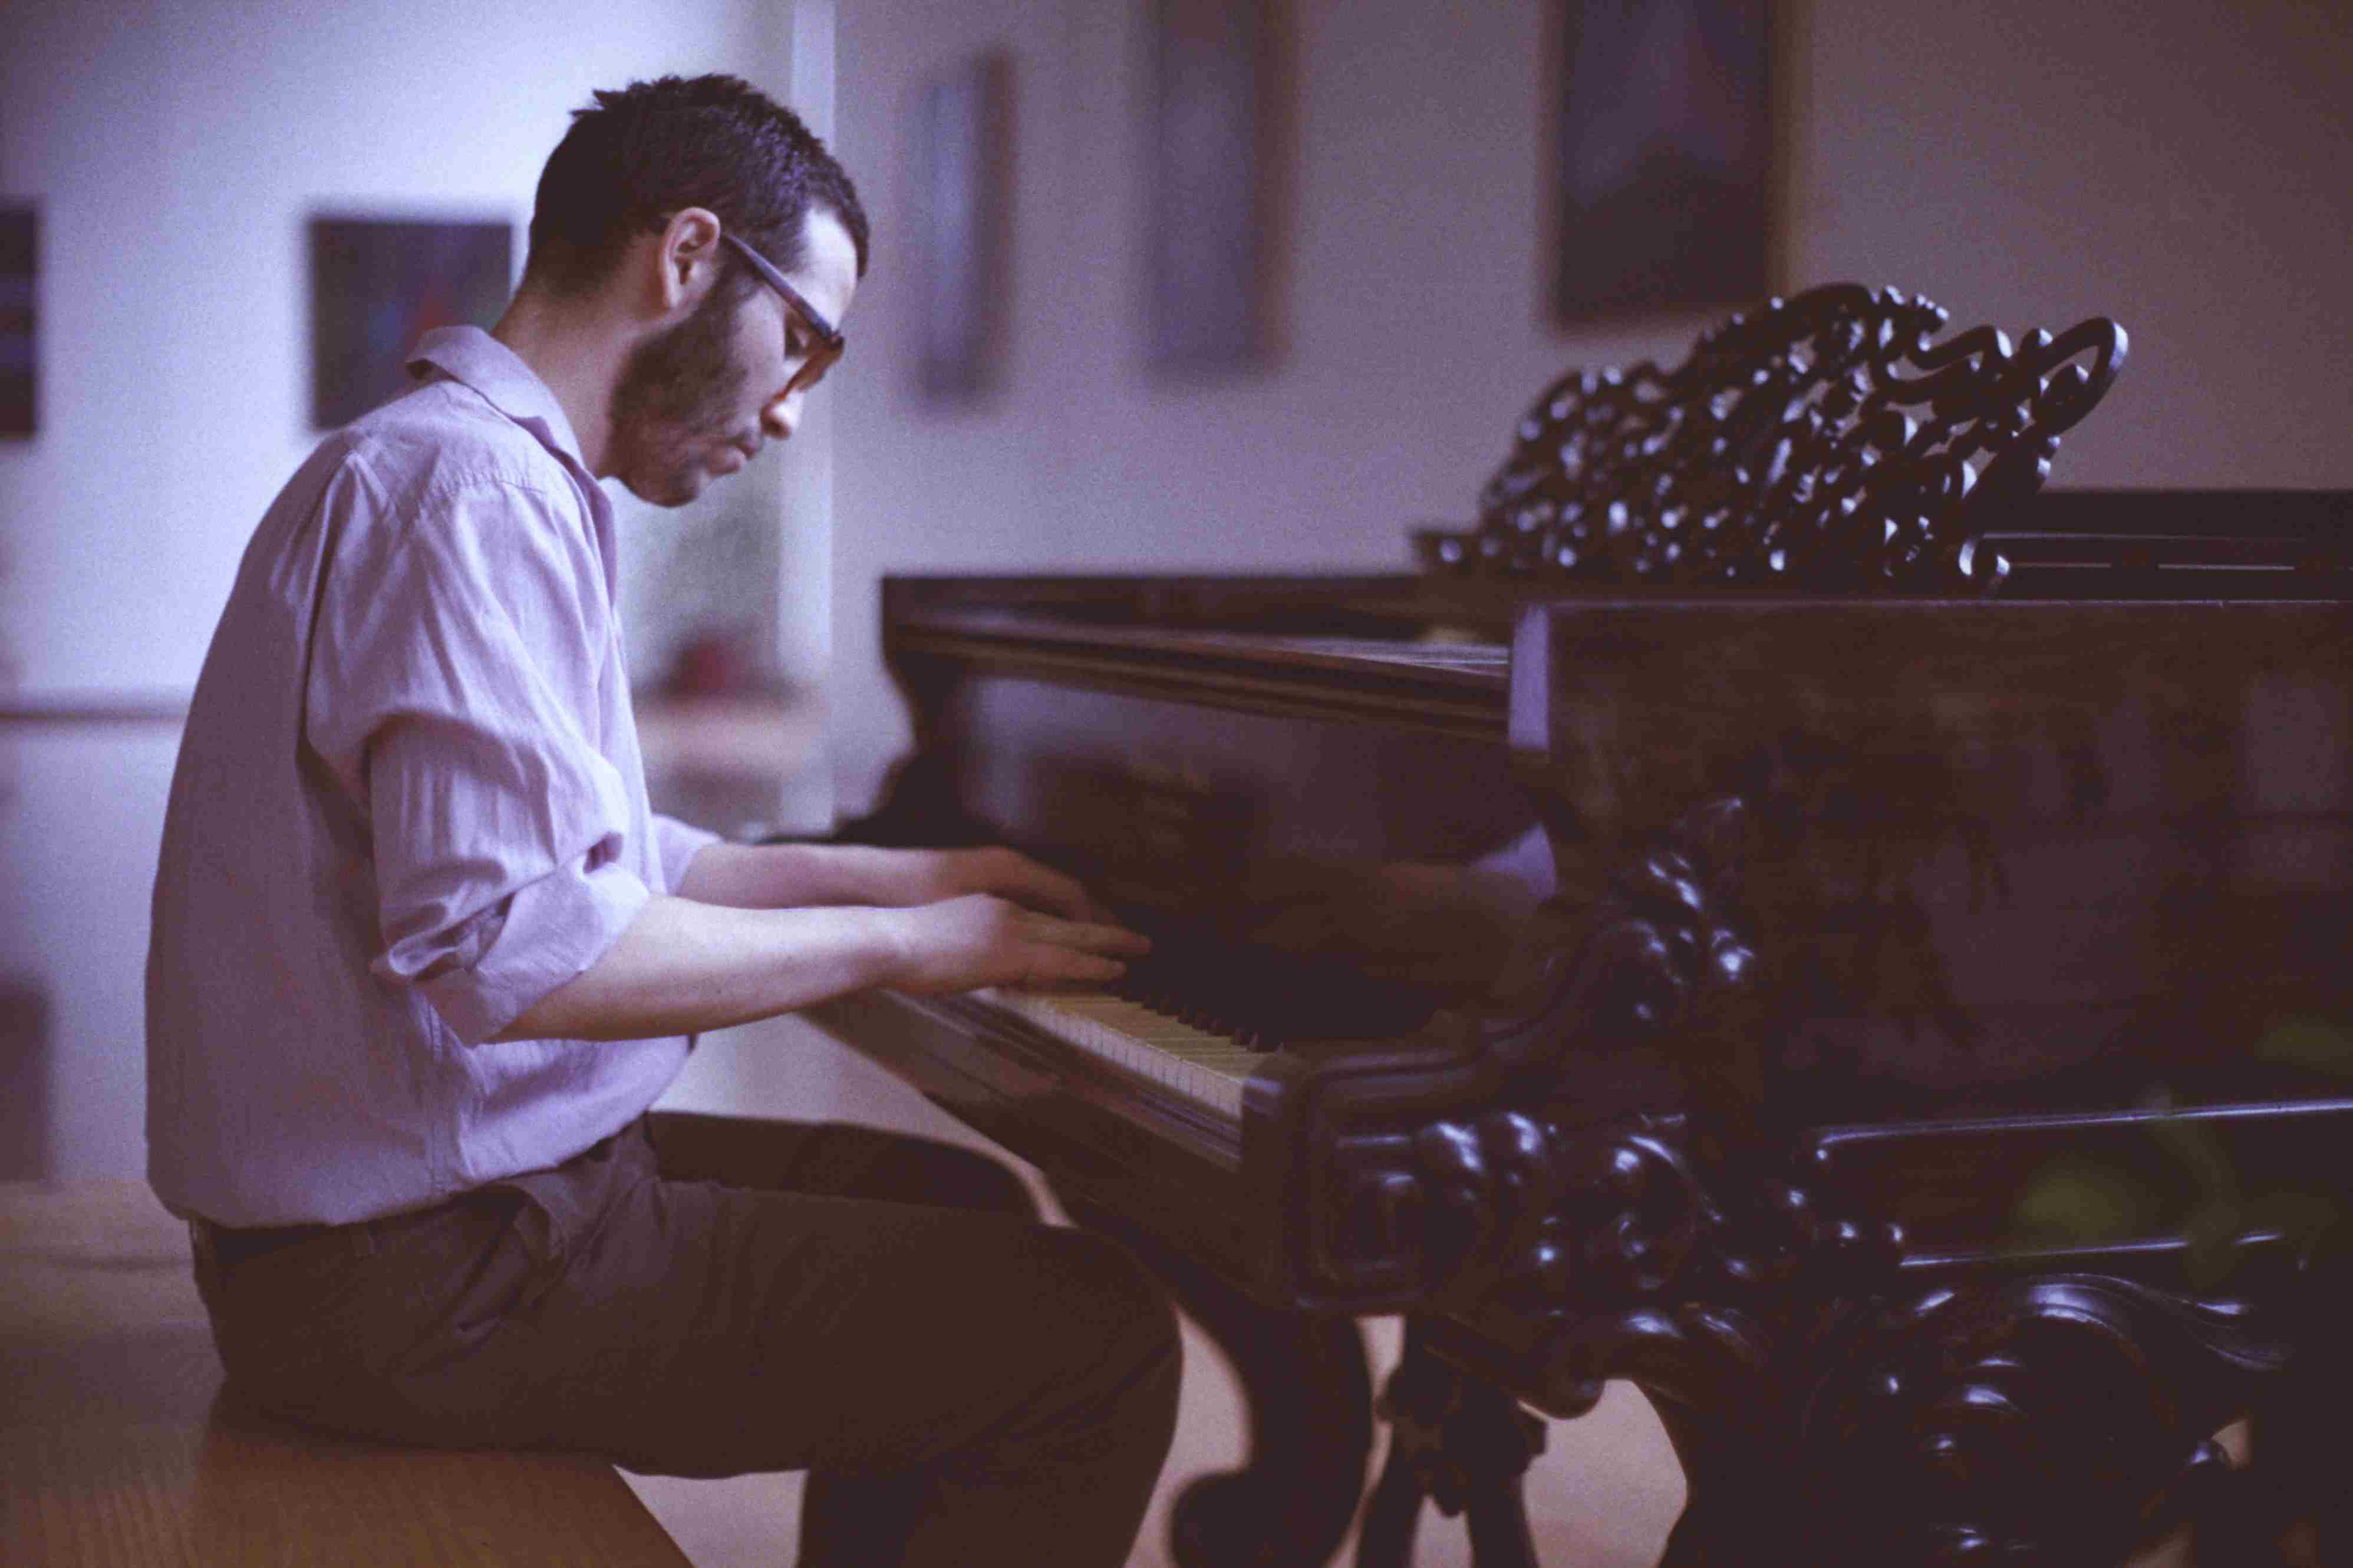 Calming Piano Songs to Listen to for Pain and Heartache